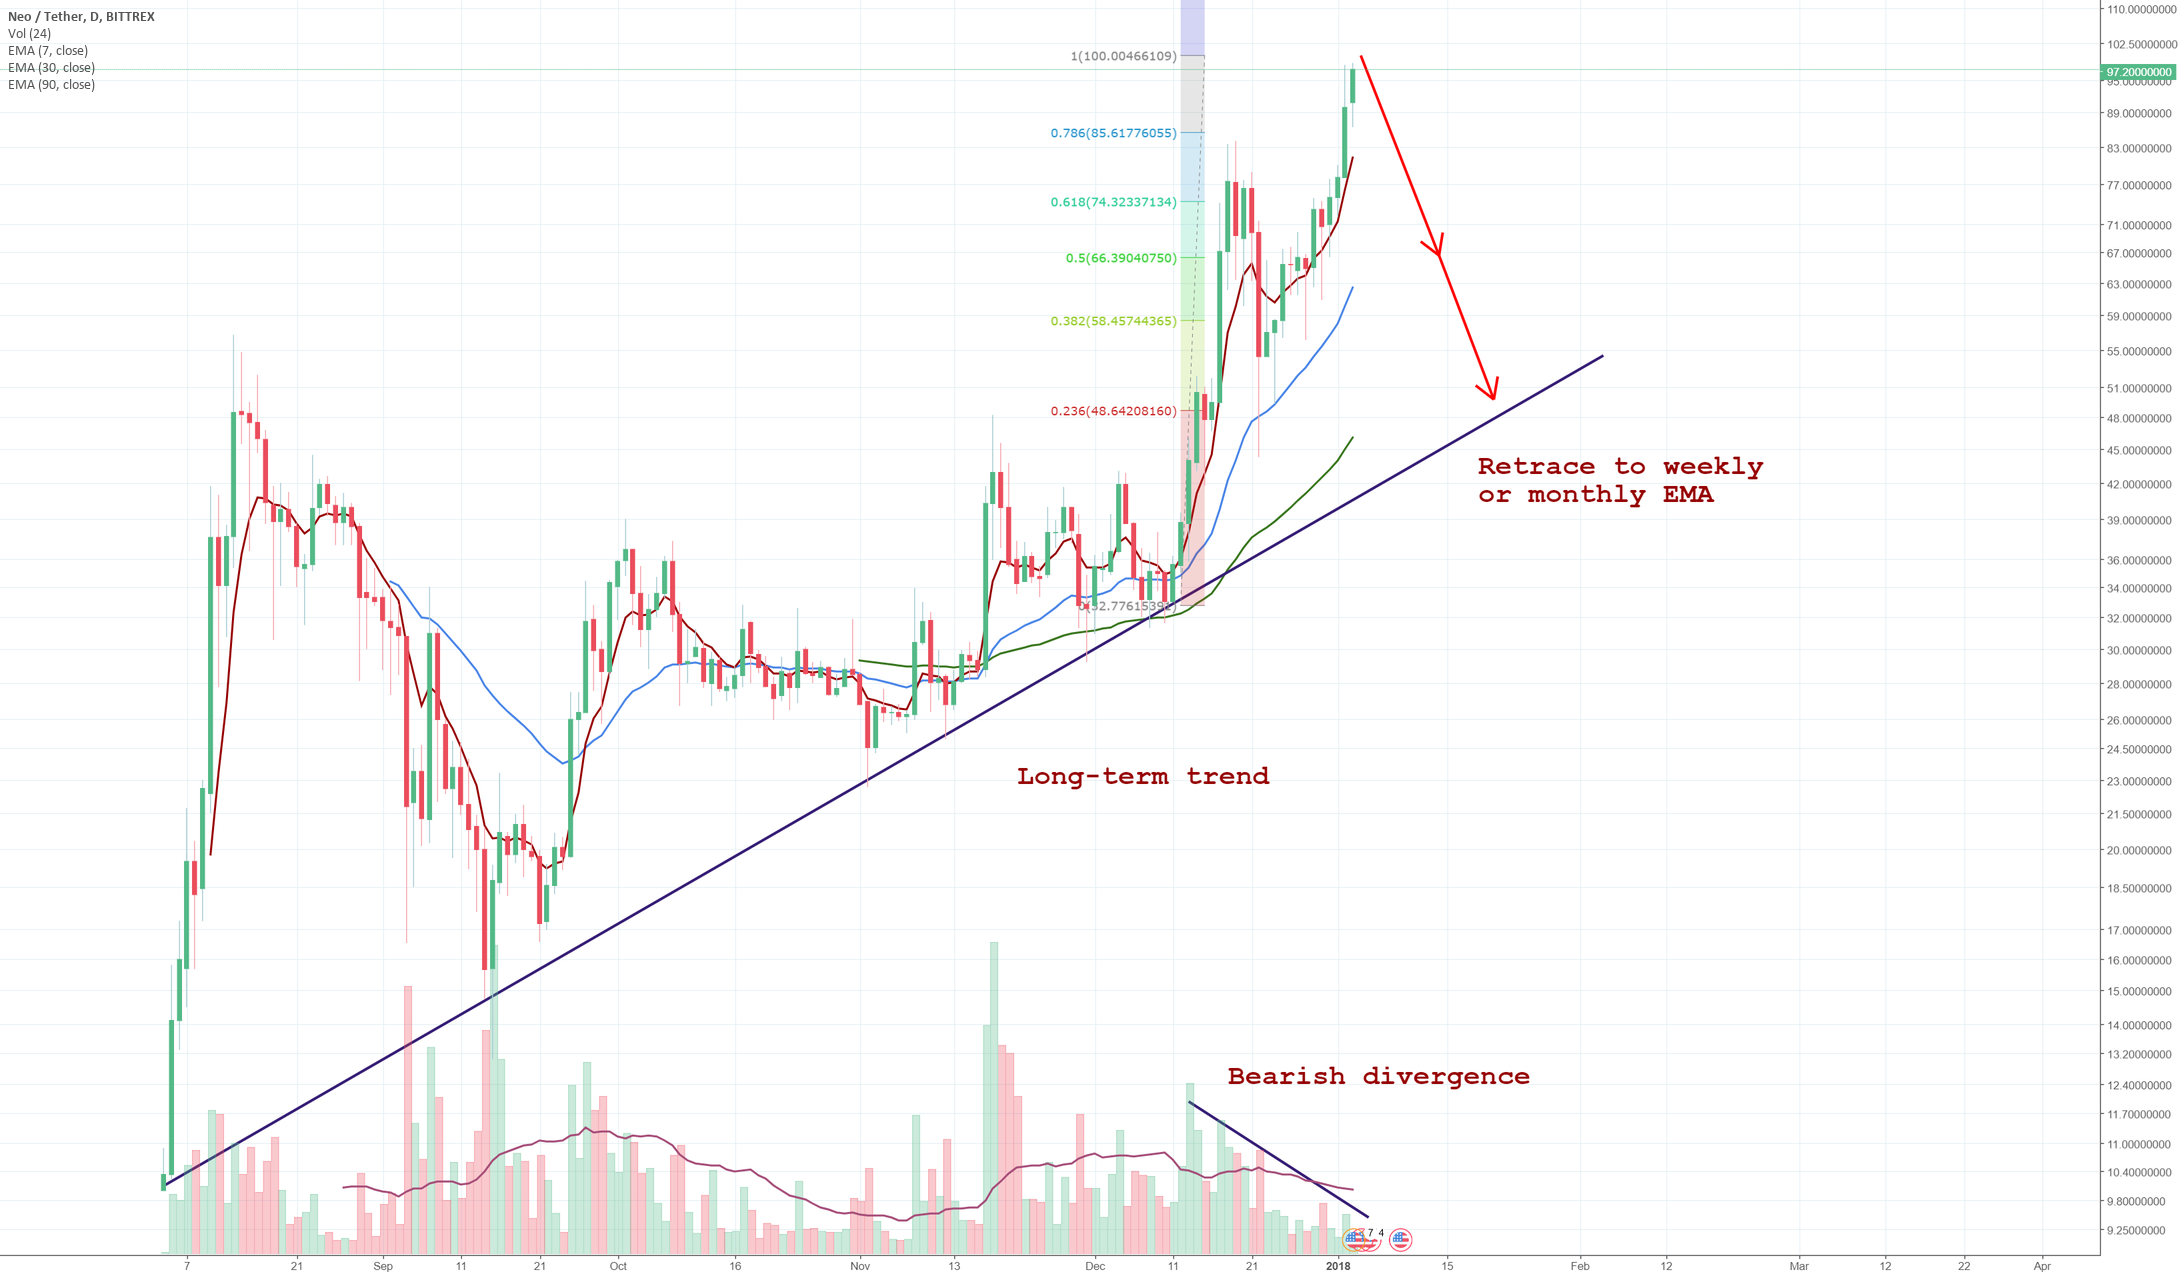 NEO bearish divergence & retrace to long-term trend